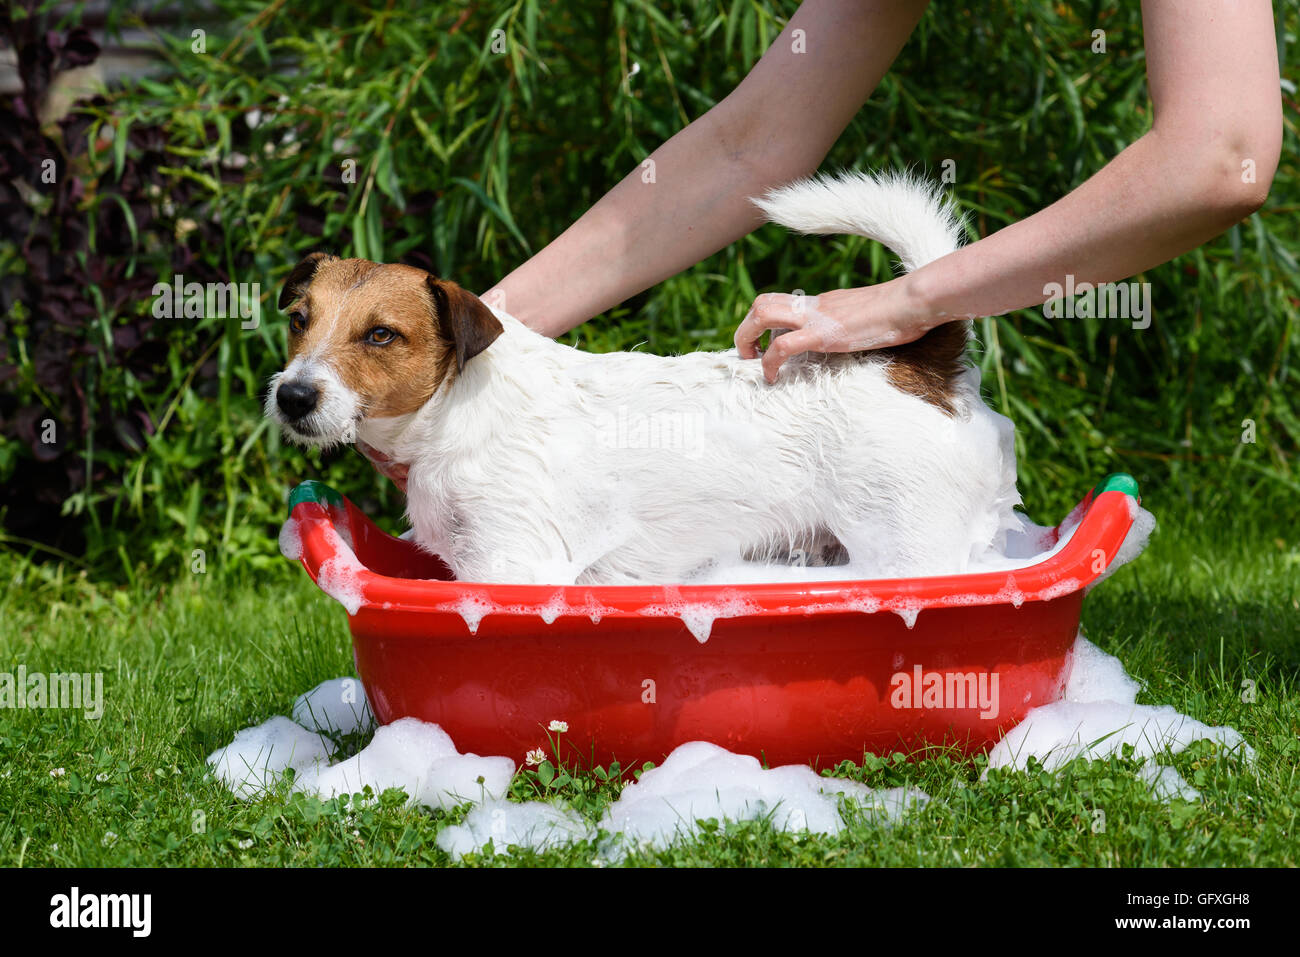 Dog washing with soap foam in red wash-basin at open air - Stock Image